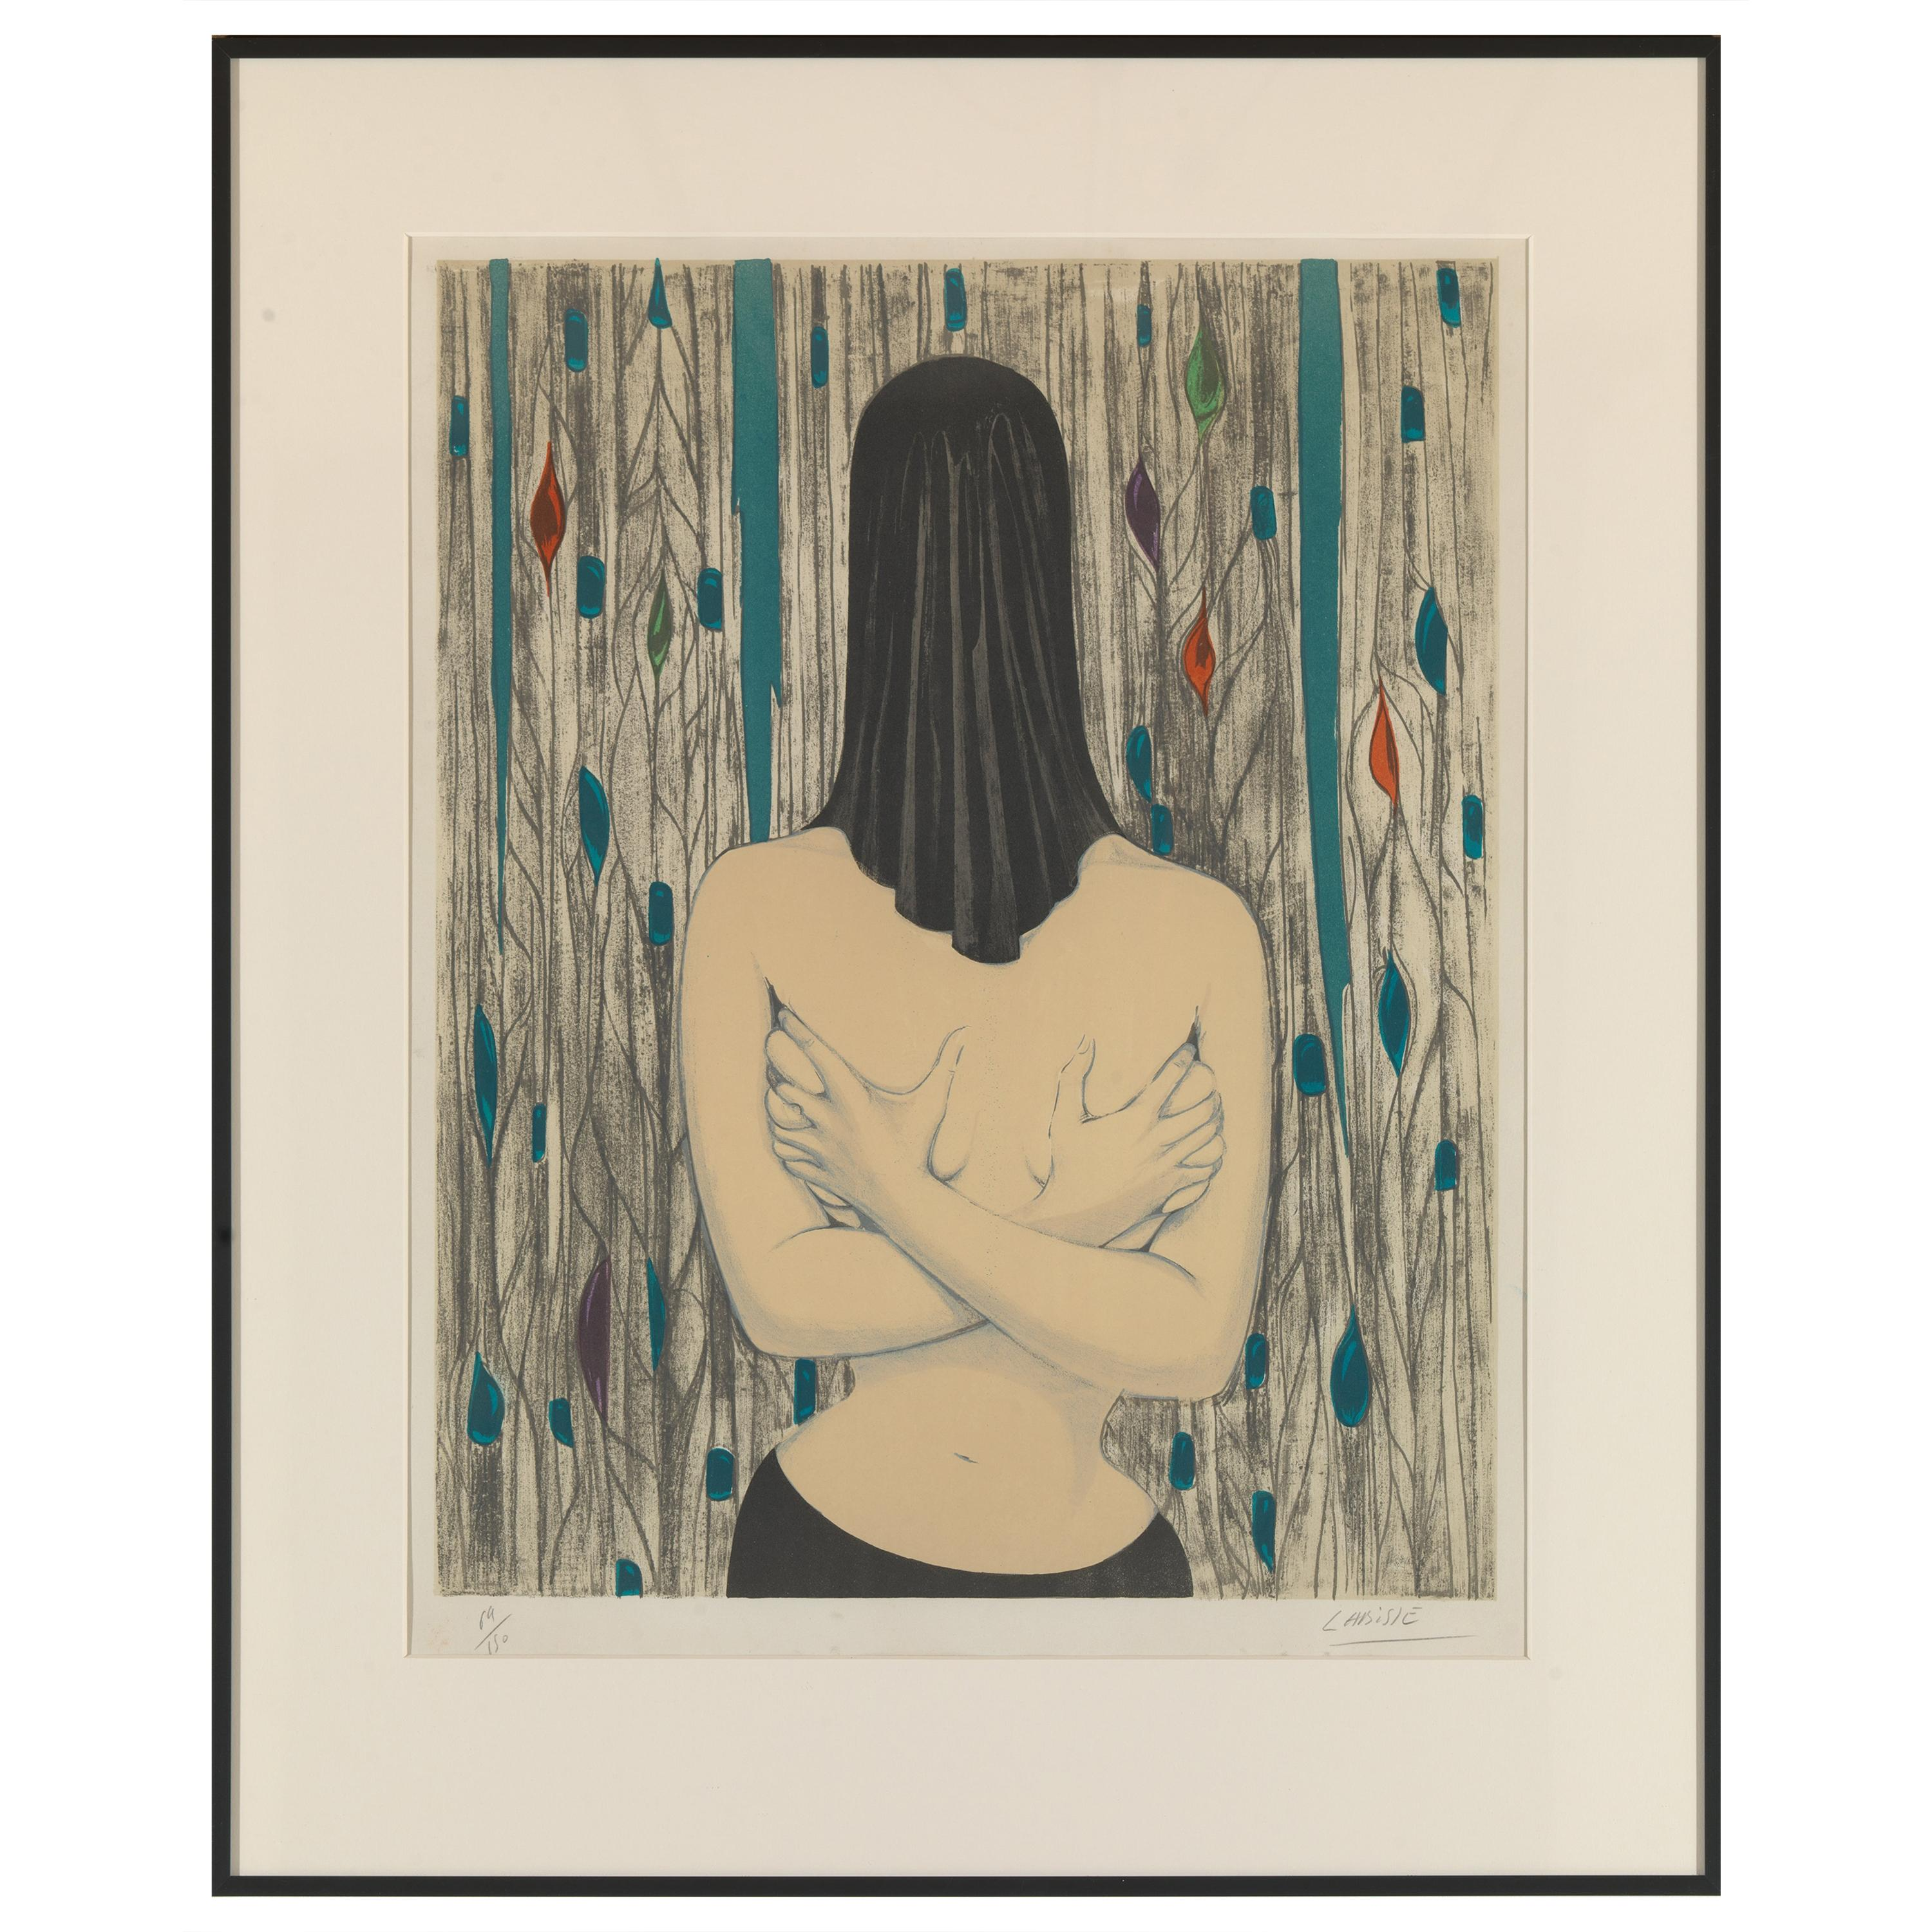 Labisse Félix, Surreal Woman, Lithography, Framed and Signed